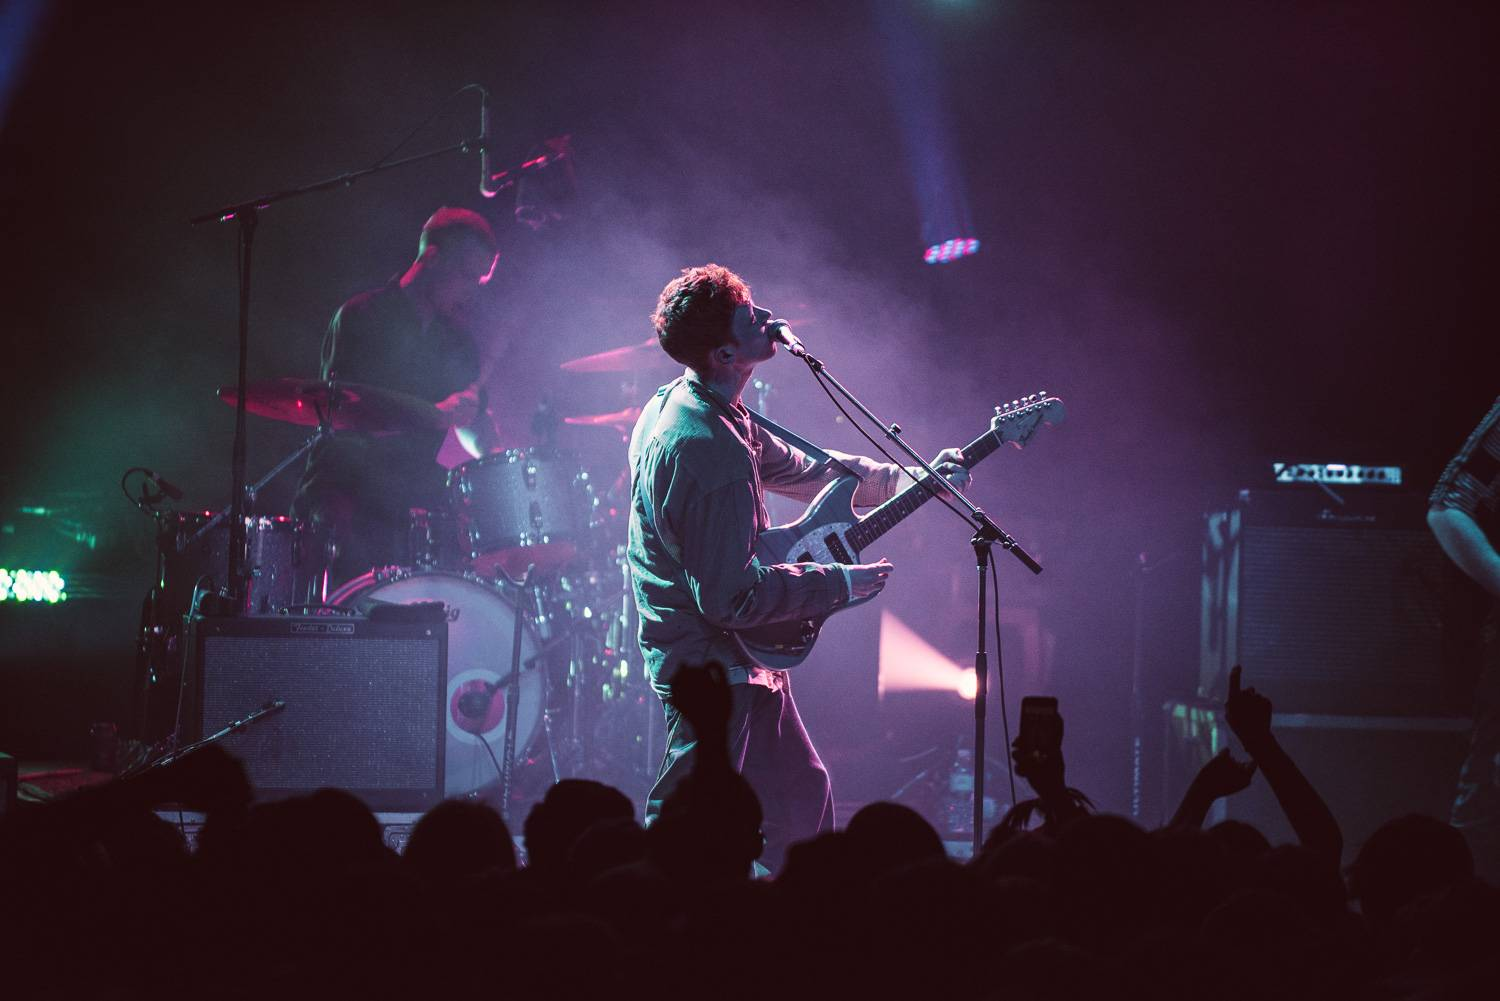 King Krule at the Vogue Theatre, Vancouver, Nov 5 2017. Pavel Boiko photo.